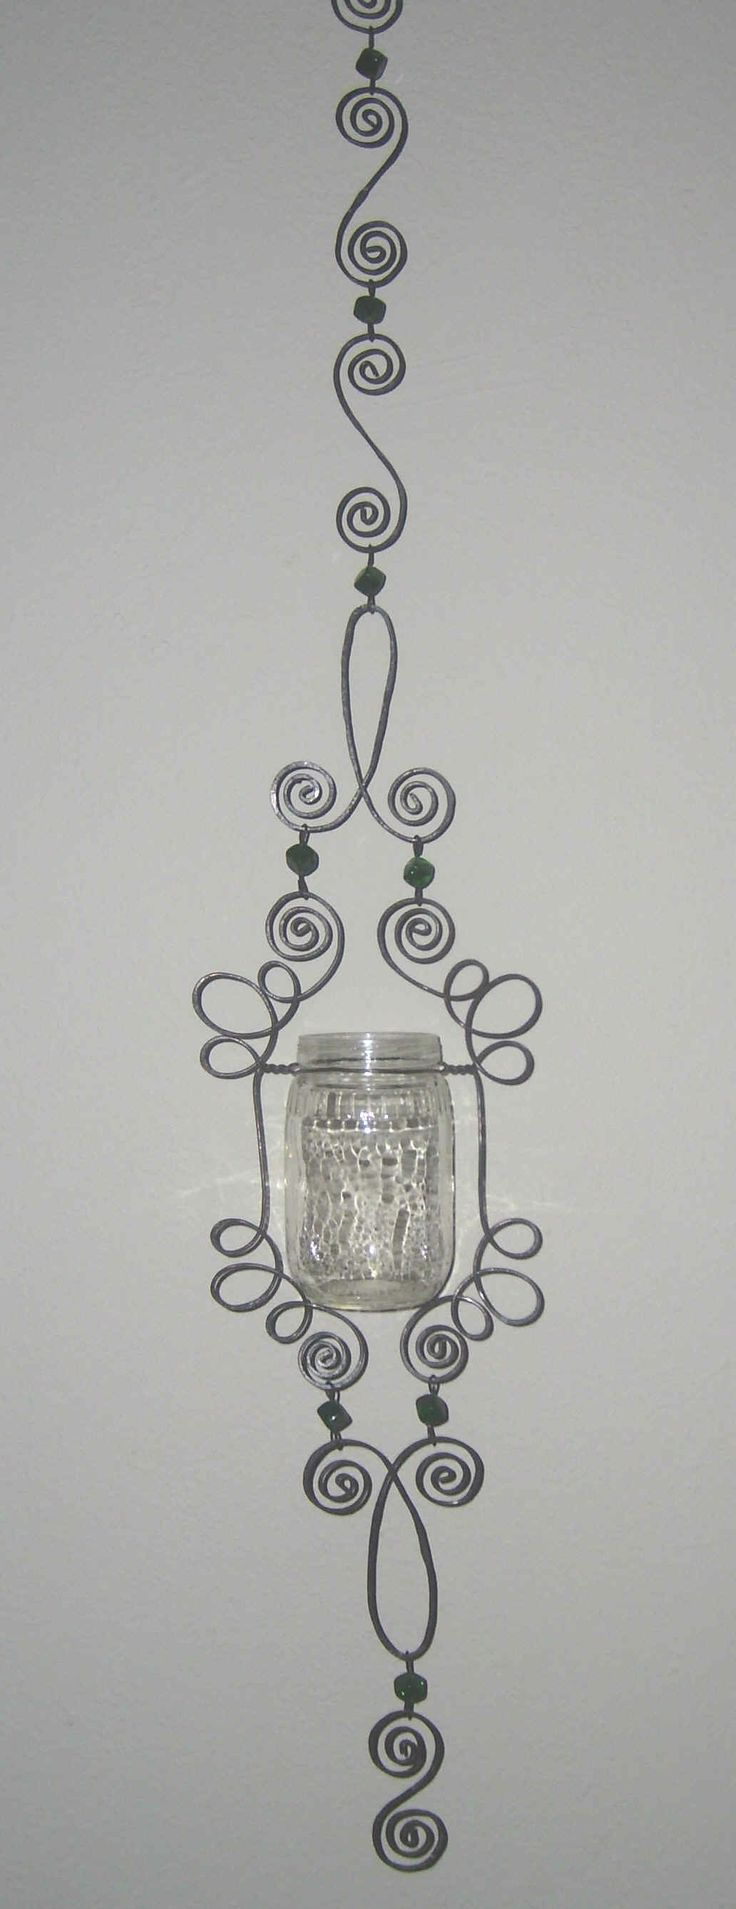 1000 ideas about hanging candle holders on pinterest for Hanging candles diy